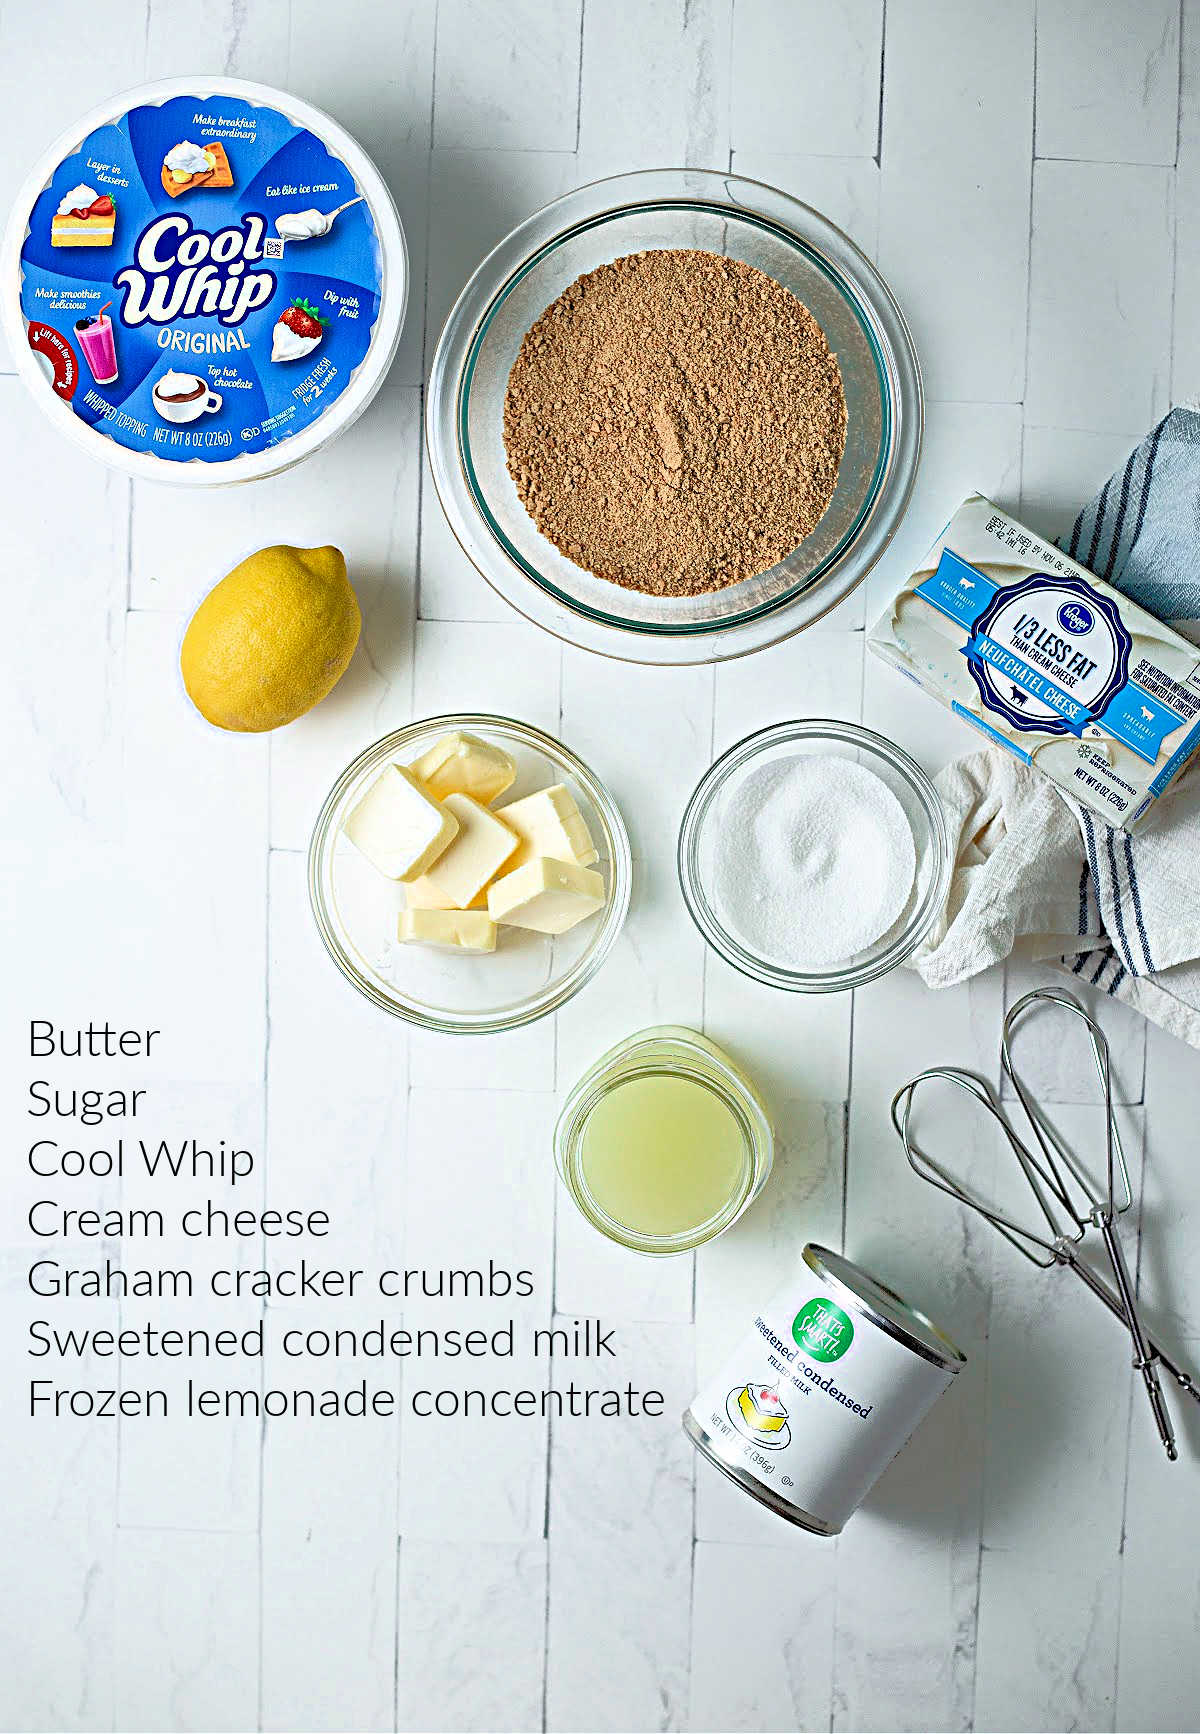 ingredients for lemonade pie on a table: Cool Whip, crushed graham crackers, butter, sugar, lemonade, sweetened condensed milk, and cream cheese.